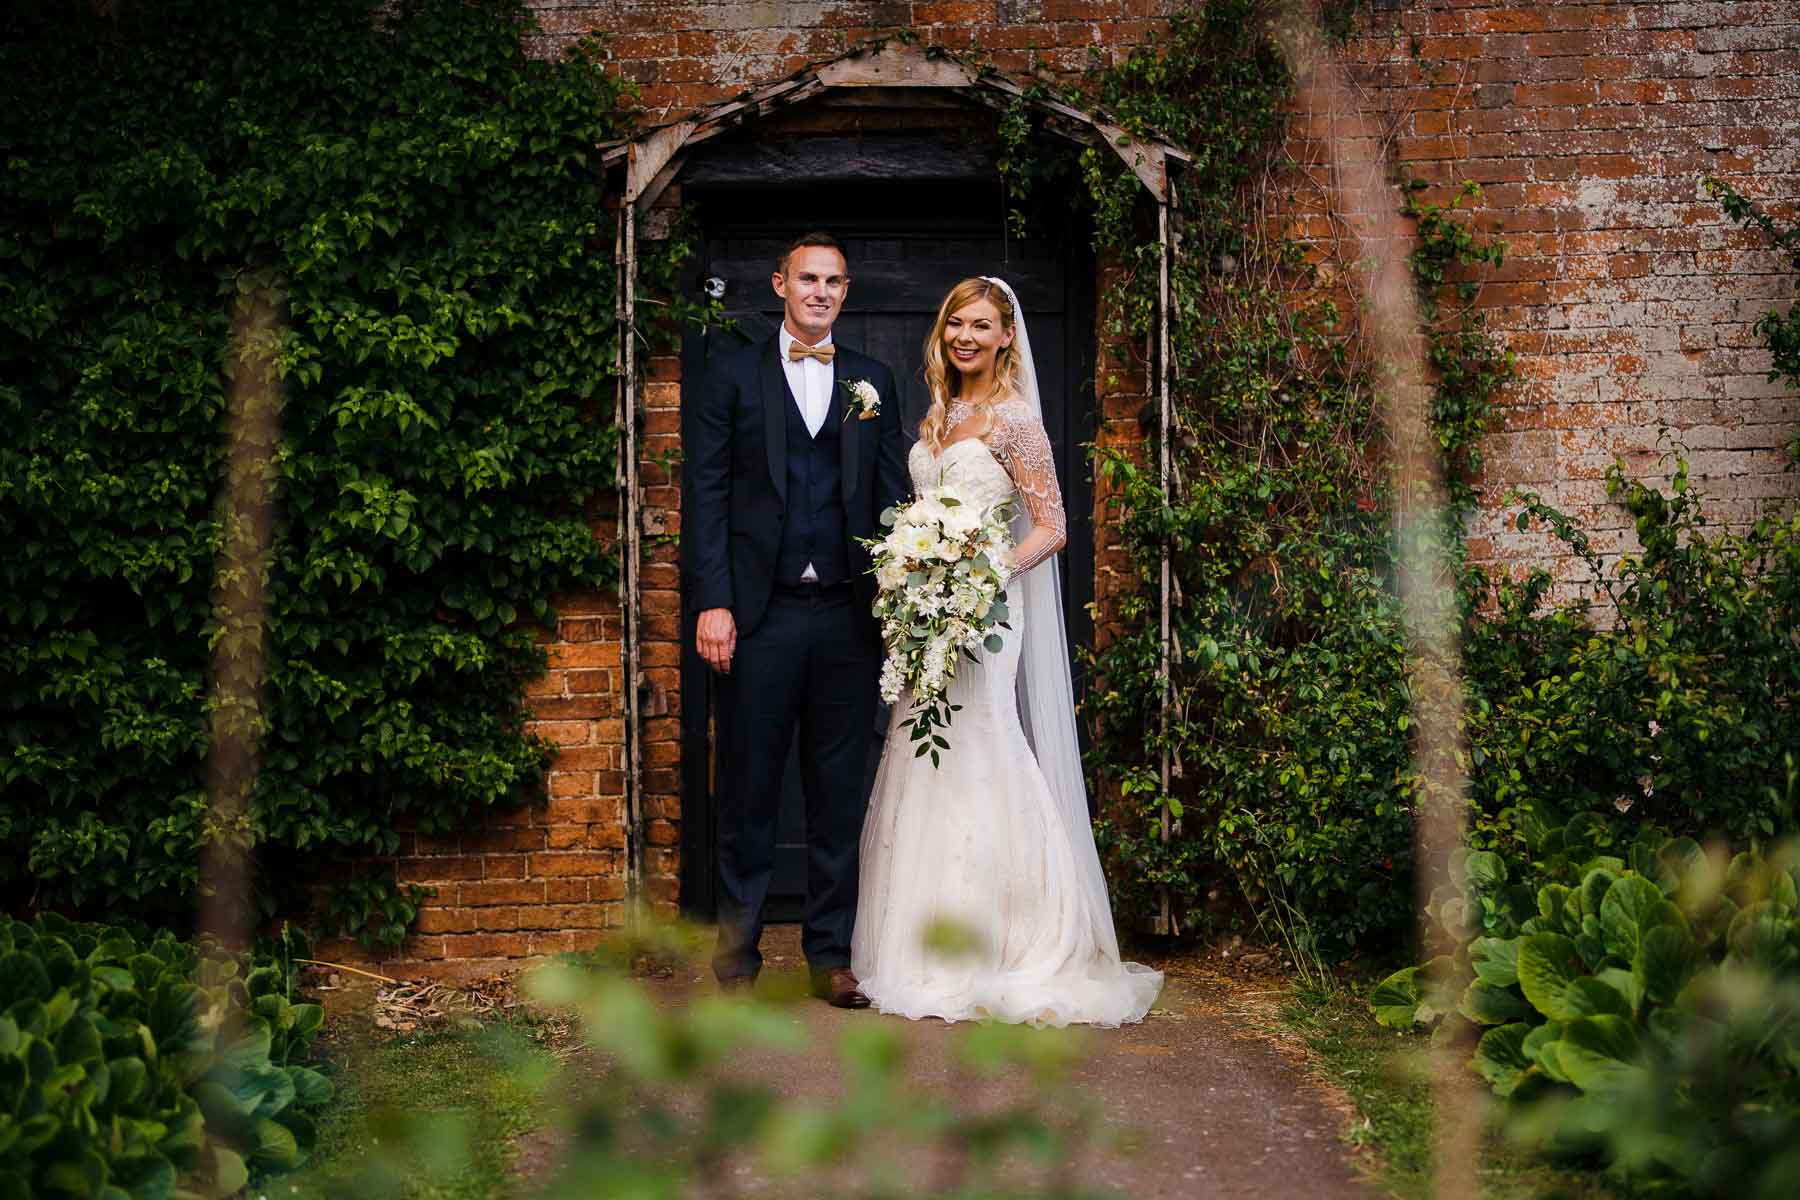 Bride and groom portraits in the walled gardens at Delapre Abbey